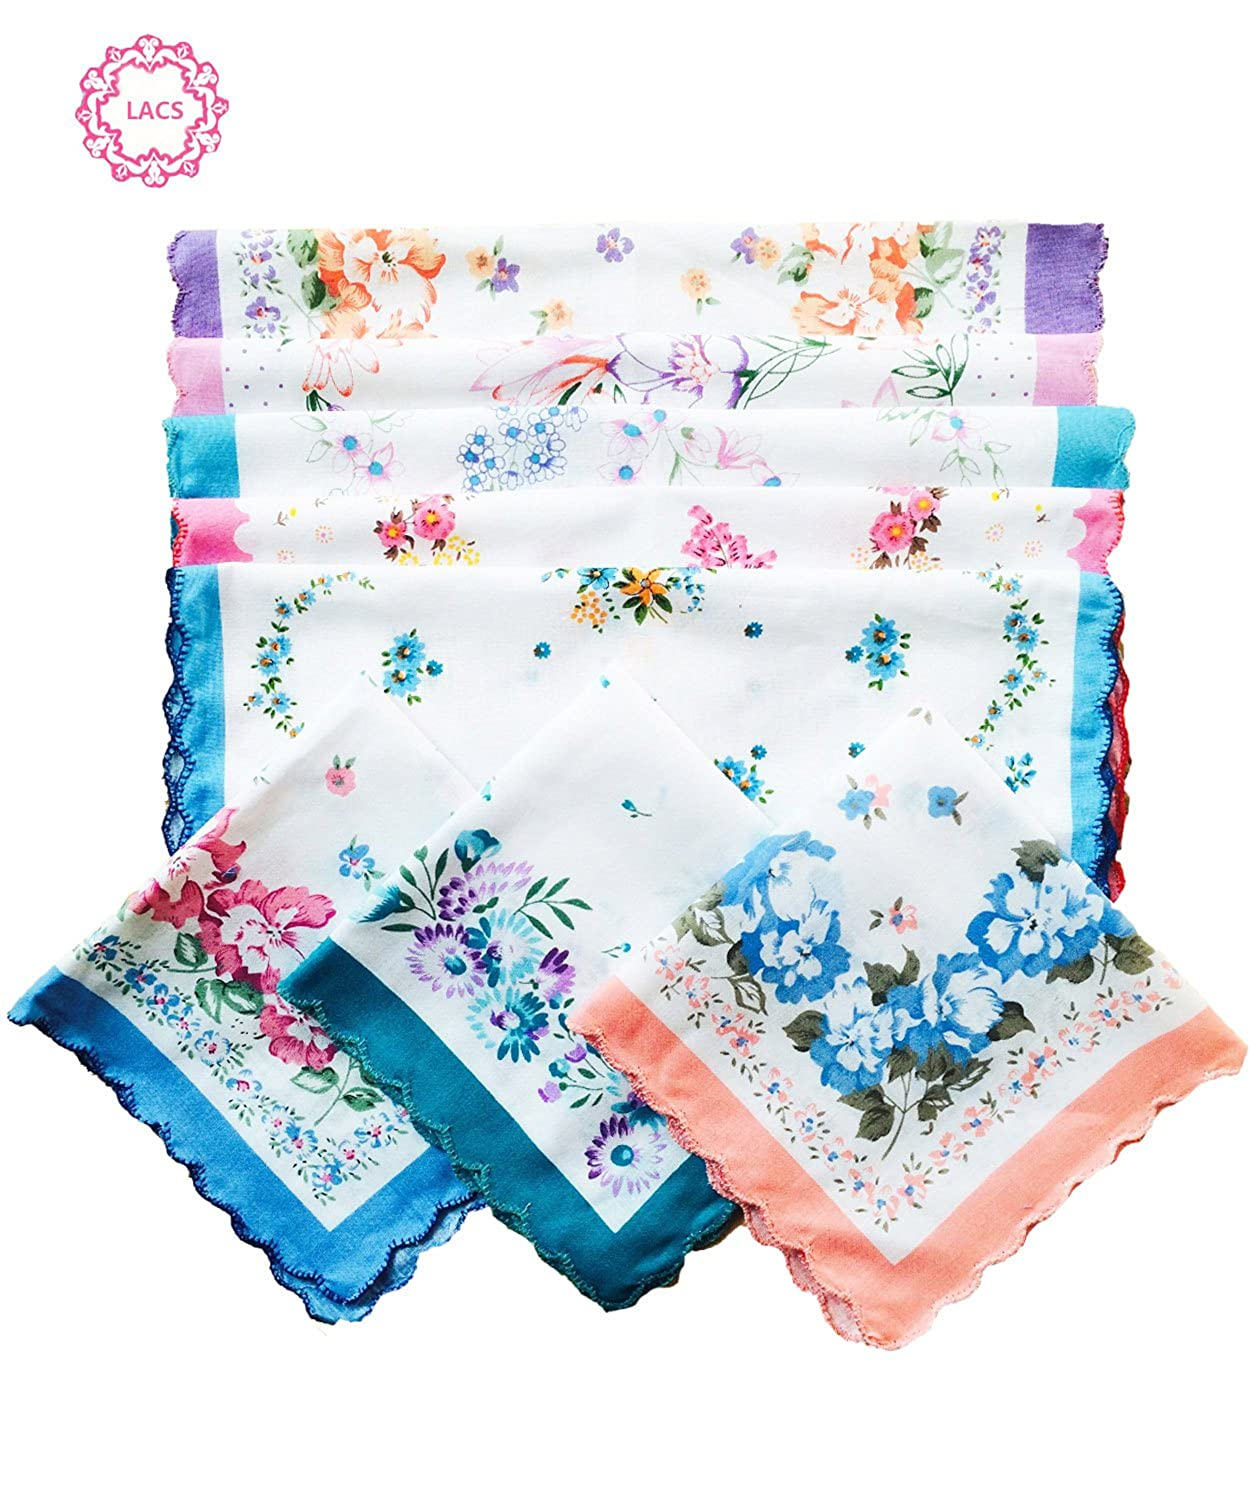 Ladies Ladies Pretty Floral Cotton handkerchiefs Assort Lot Hankies 11inch LACShs004-12pcs